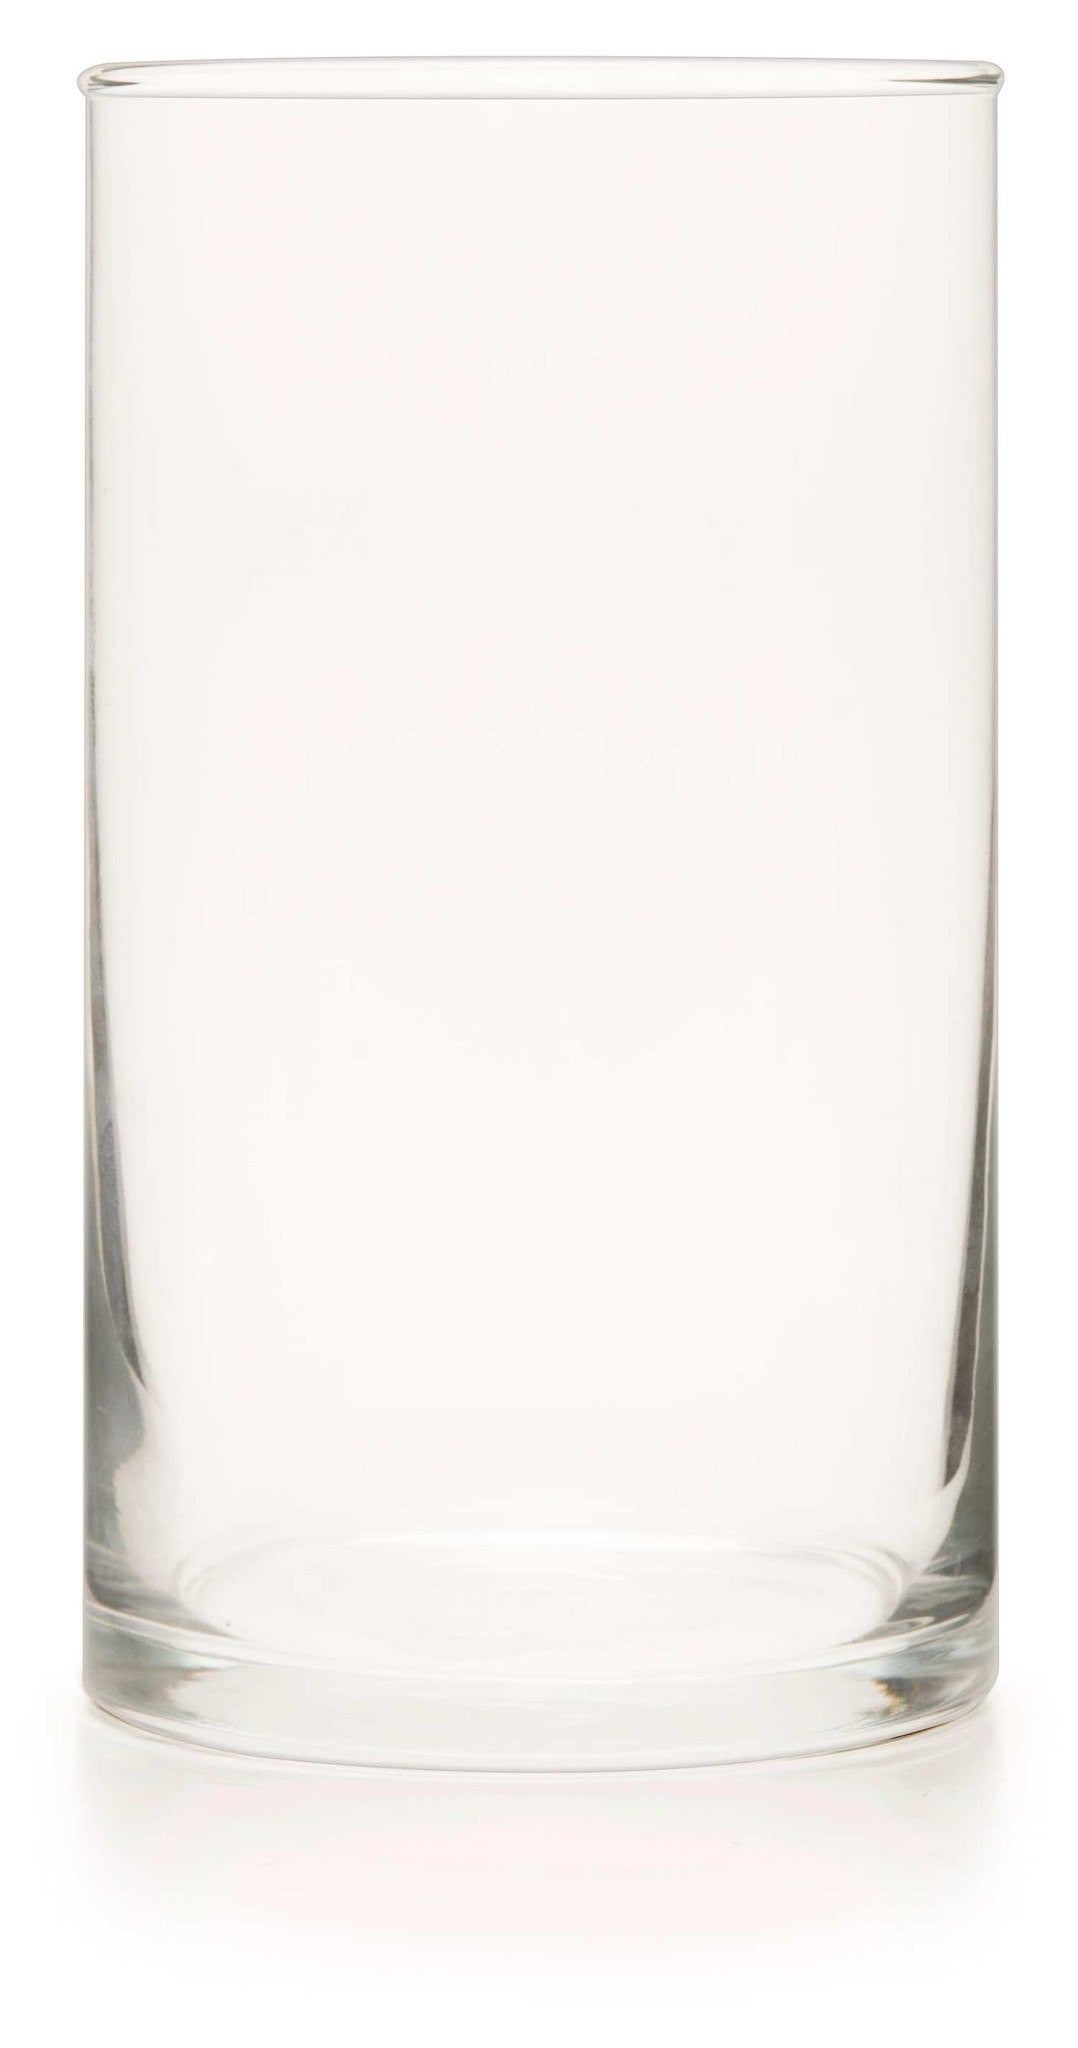 Clear Glass Cylinder (Unprinted Case of 6) - WeddingCandles.com